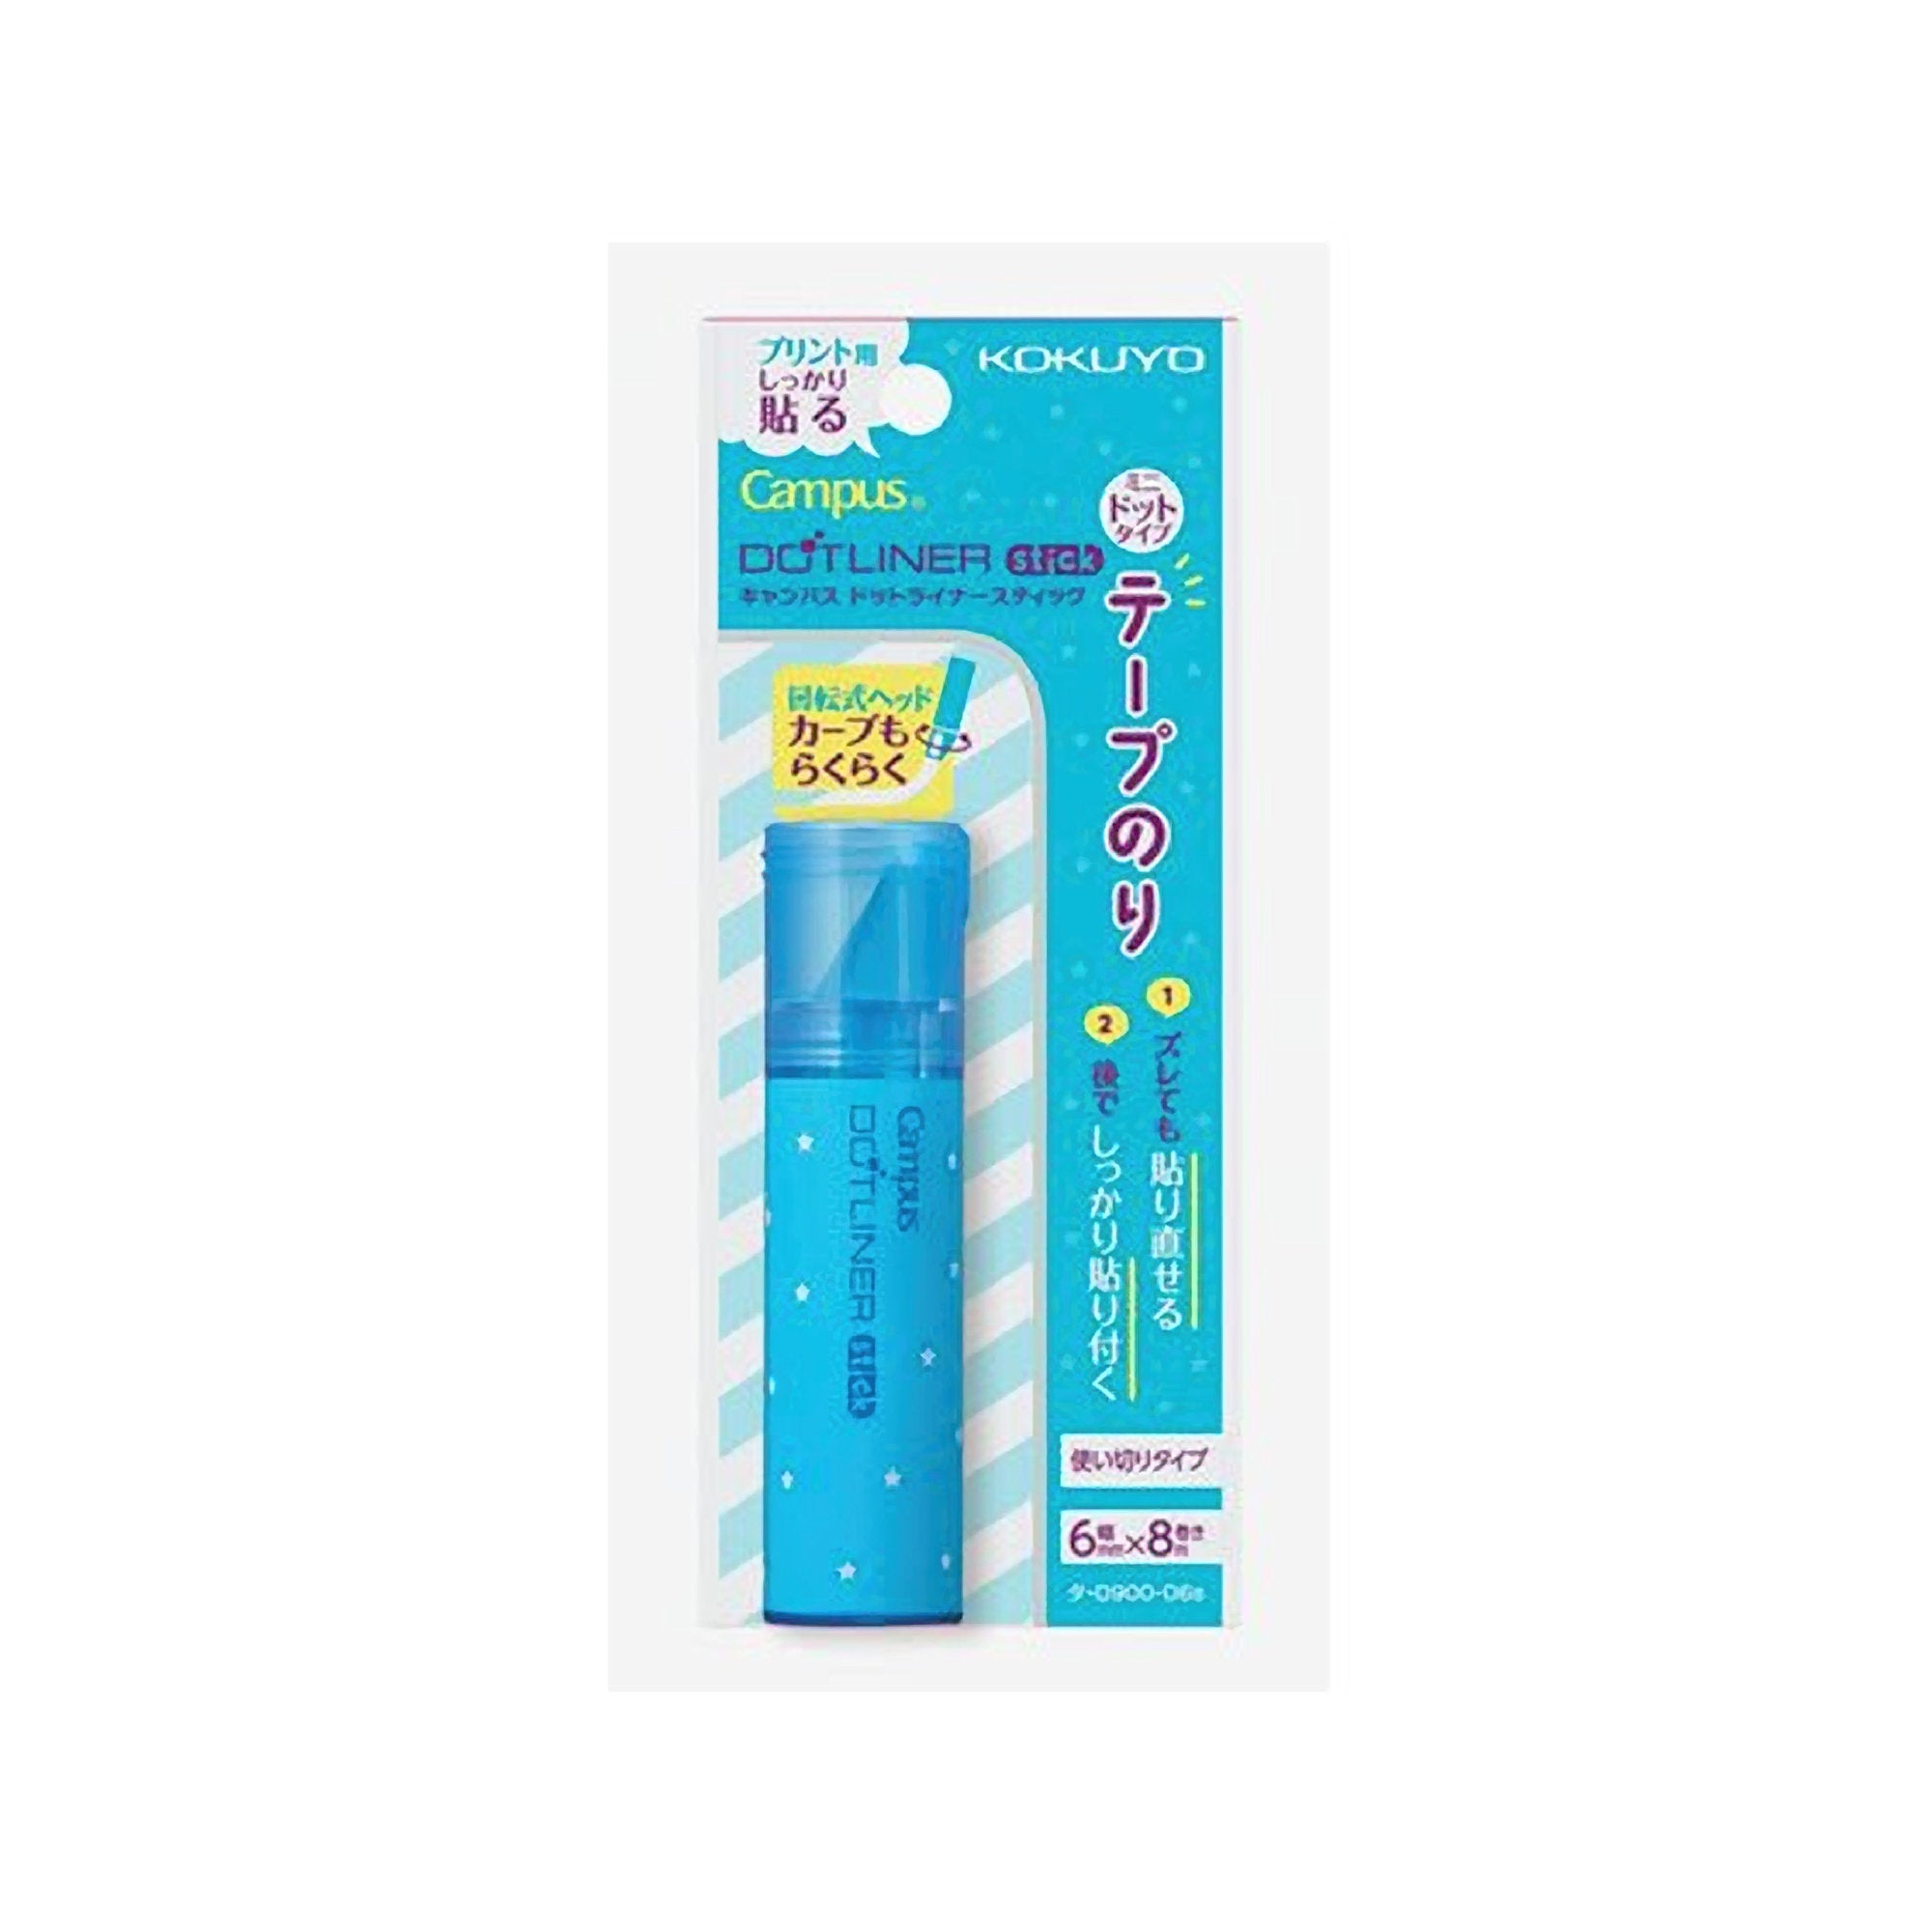 Kokuyo Campus BLUE DOTLINER REPOSITIONABLE Glue Stick Photo Glue Acid-Free Glue | D900-06 - The Stationery Life!